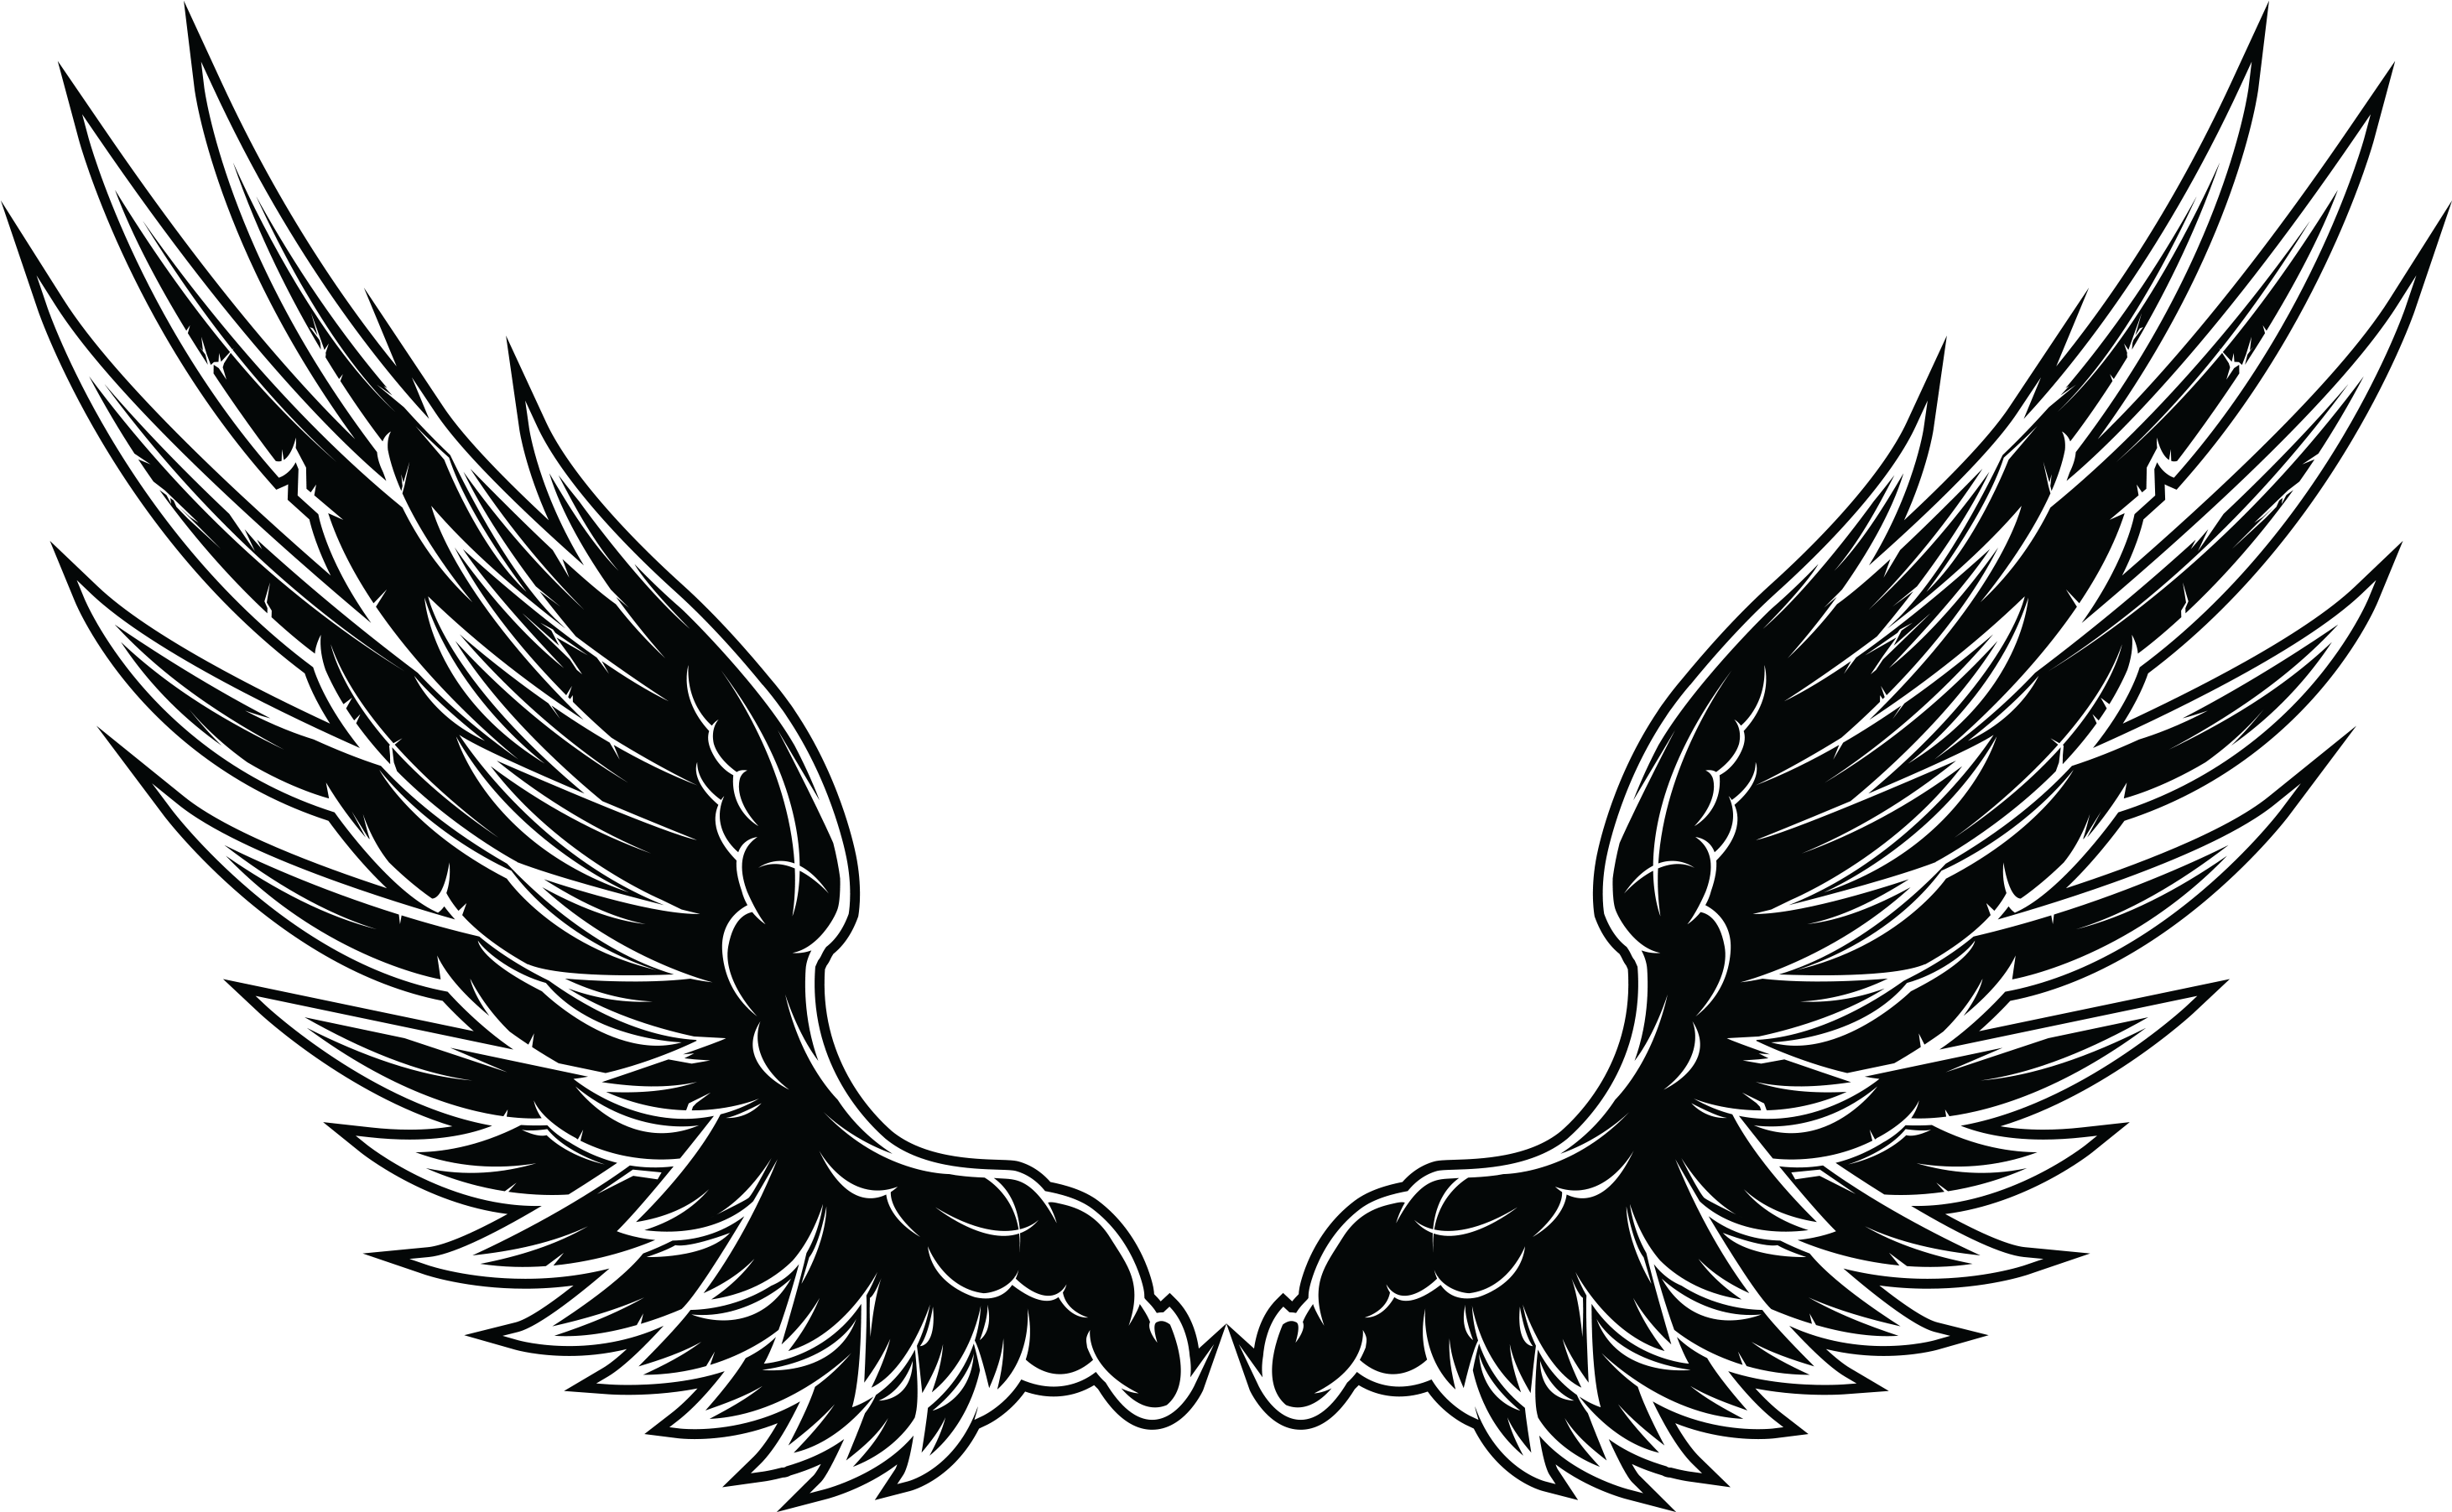 HD Eagle Wings Tattoo Designs Transparent PNG Image Download.